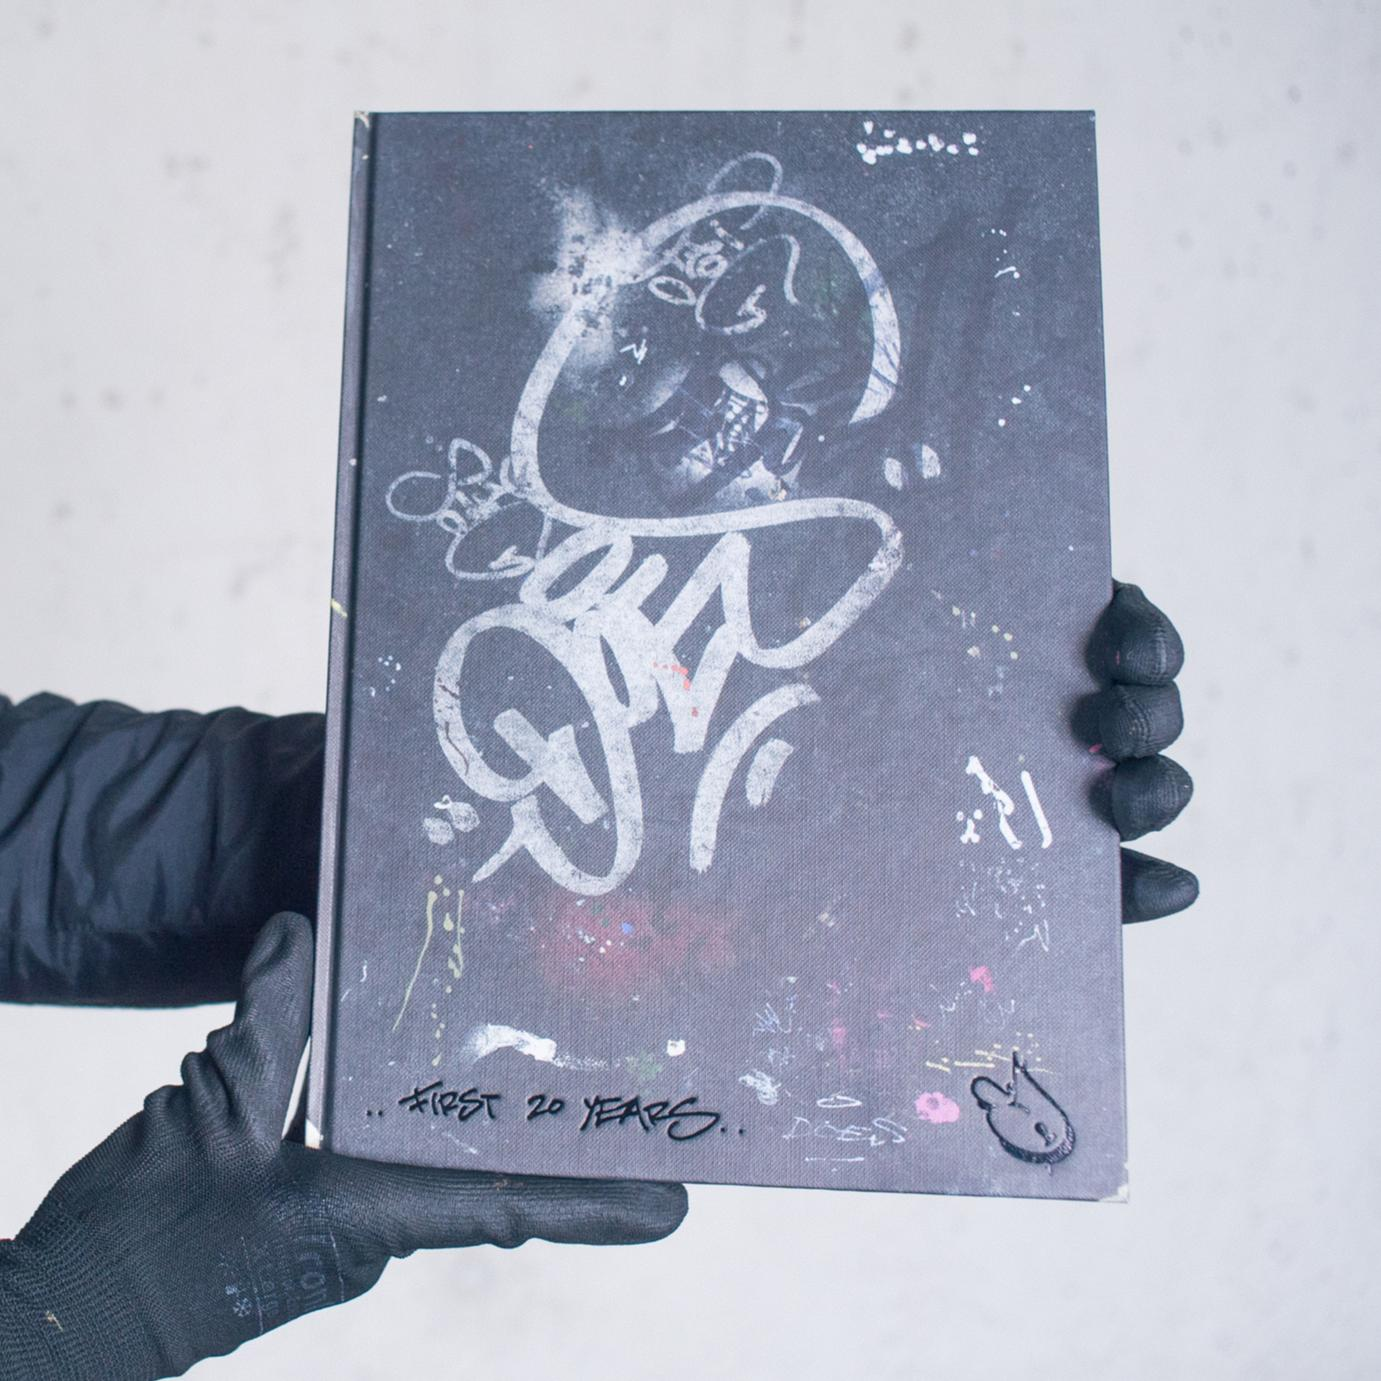 A work by Does - Book 'First 20 Years' – Collector Edition_thumb